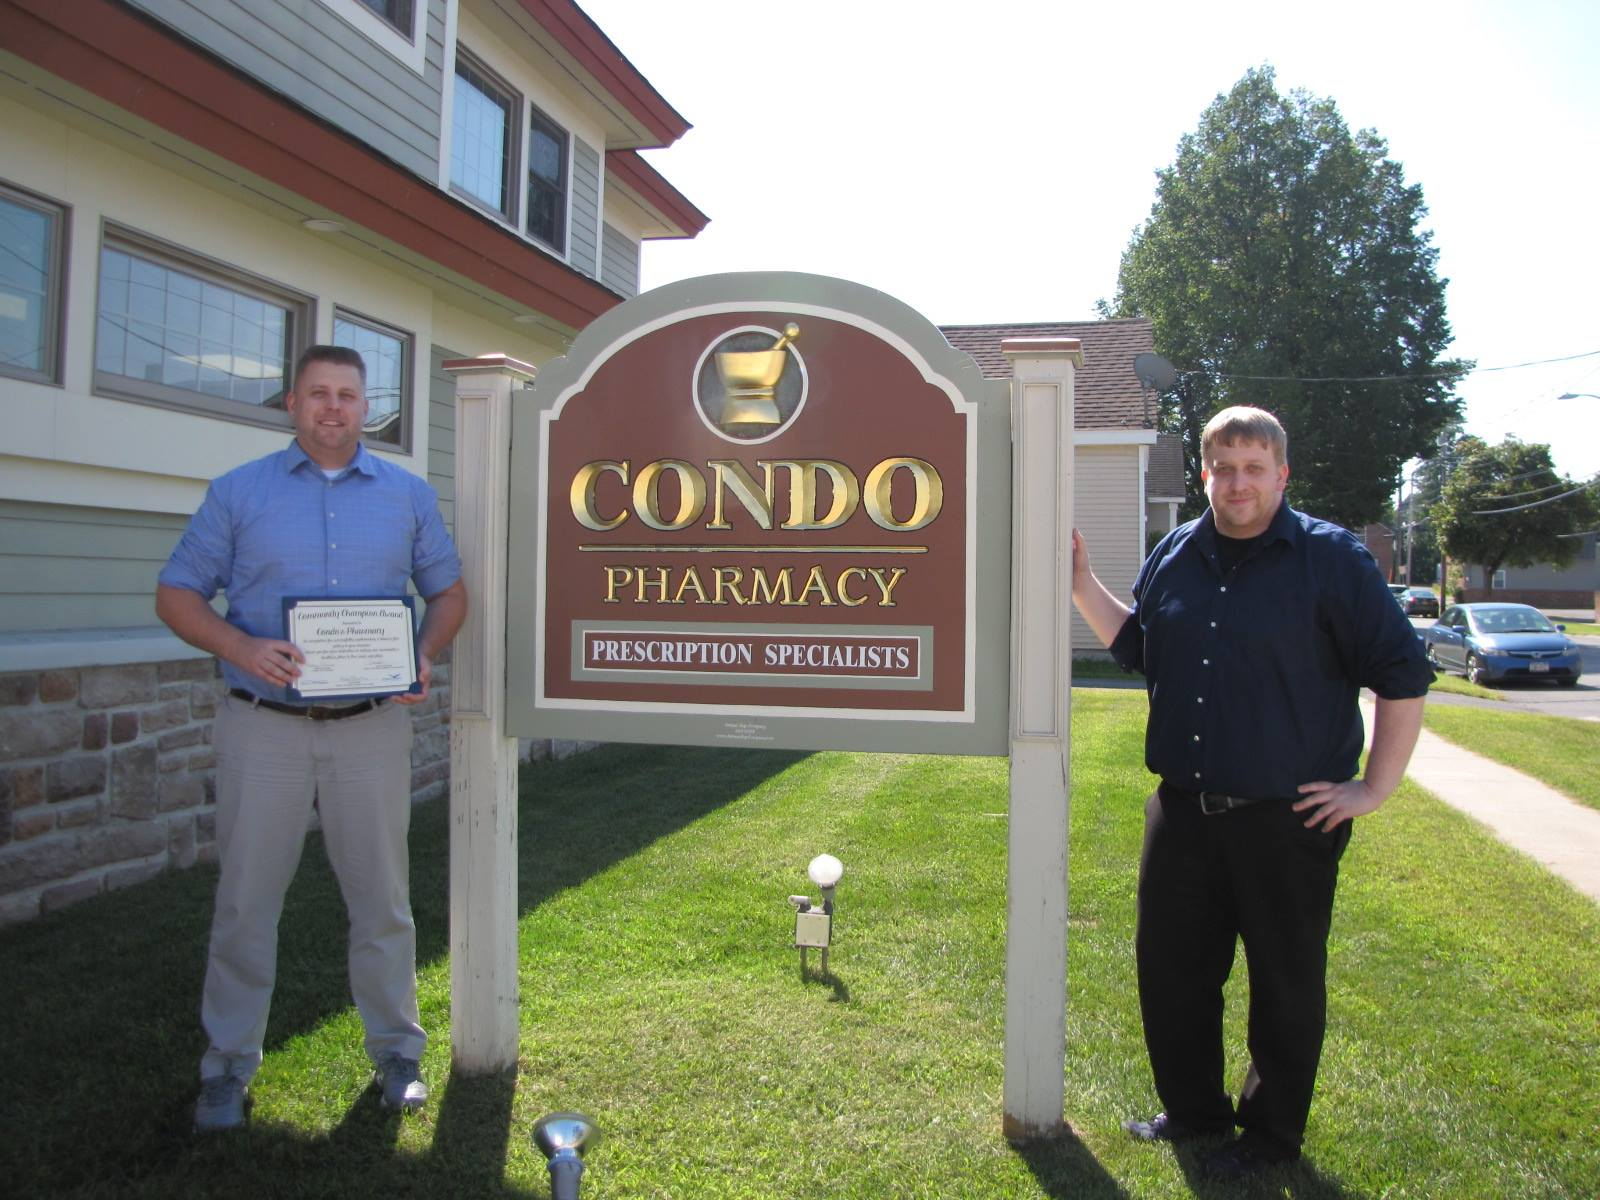 Condo Pharmacy  on Montcalm Avenue in Plattsburgh, NY was the next installment of our Community Champion Award in September 2015. We thank them for their efforts to make our community a safe place to live, work, and play. Here's a photo of Steve and Dave Moore with their award!